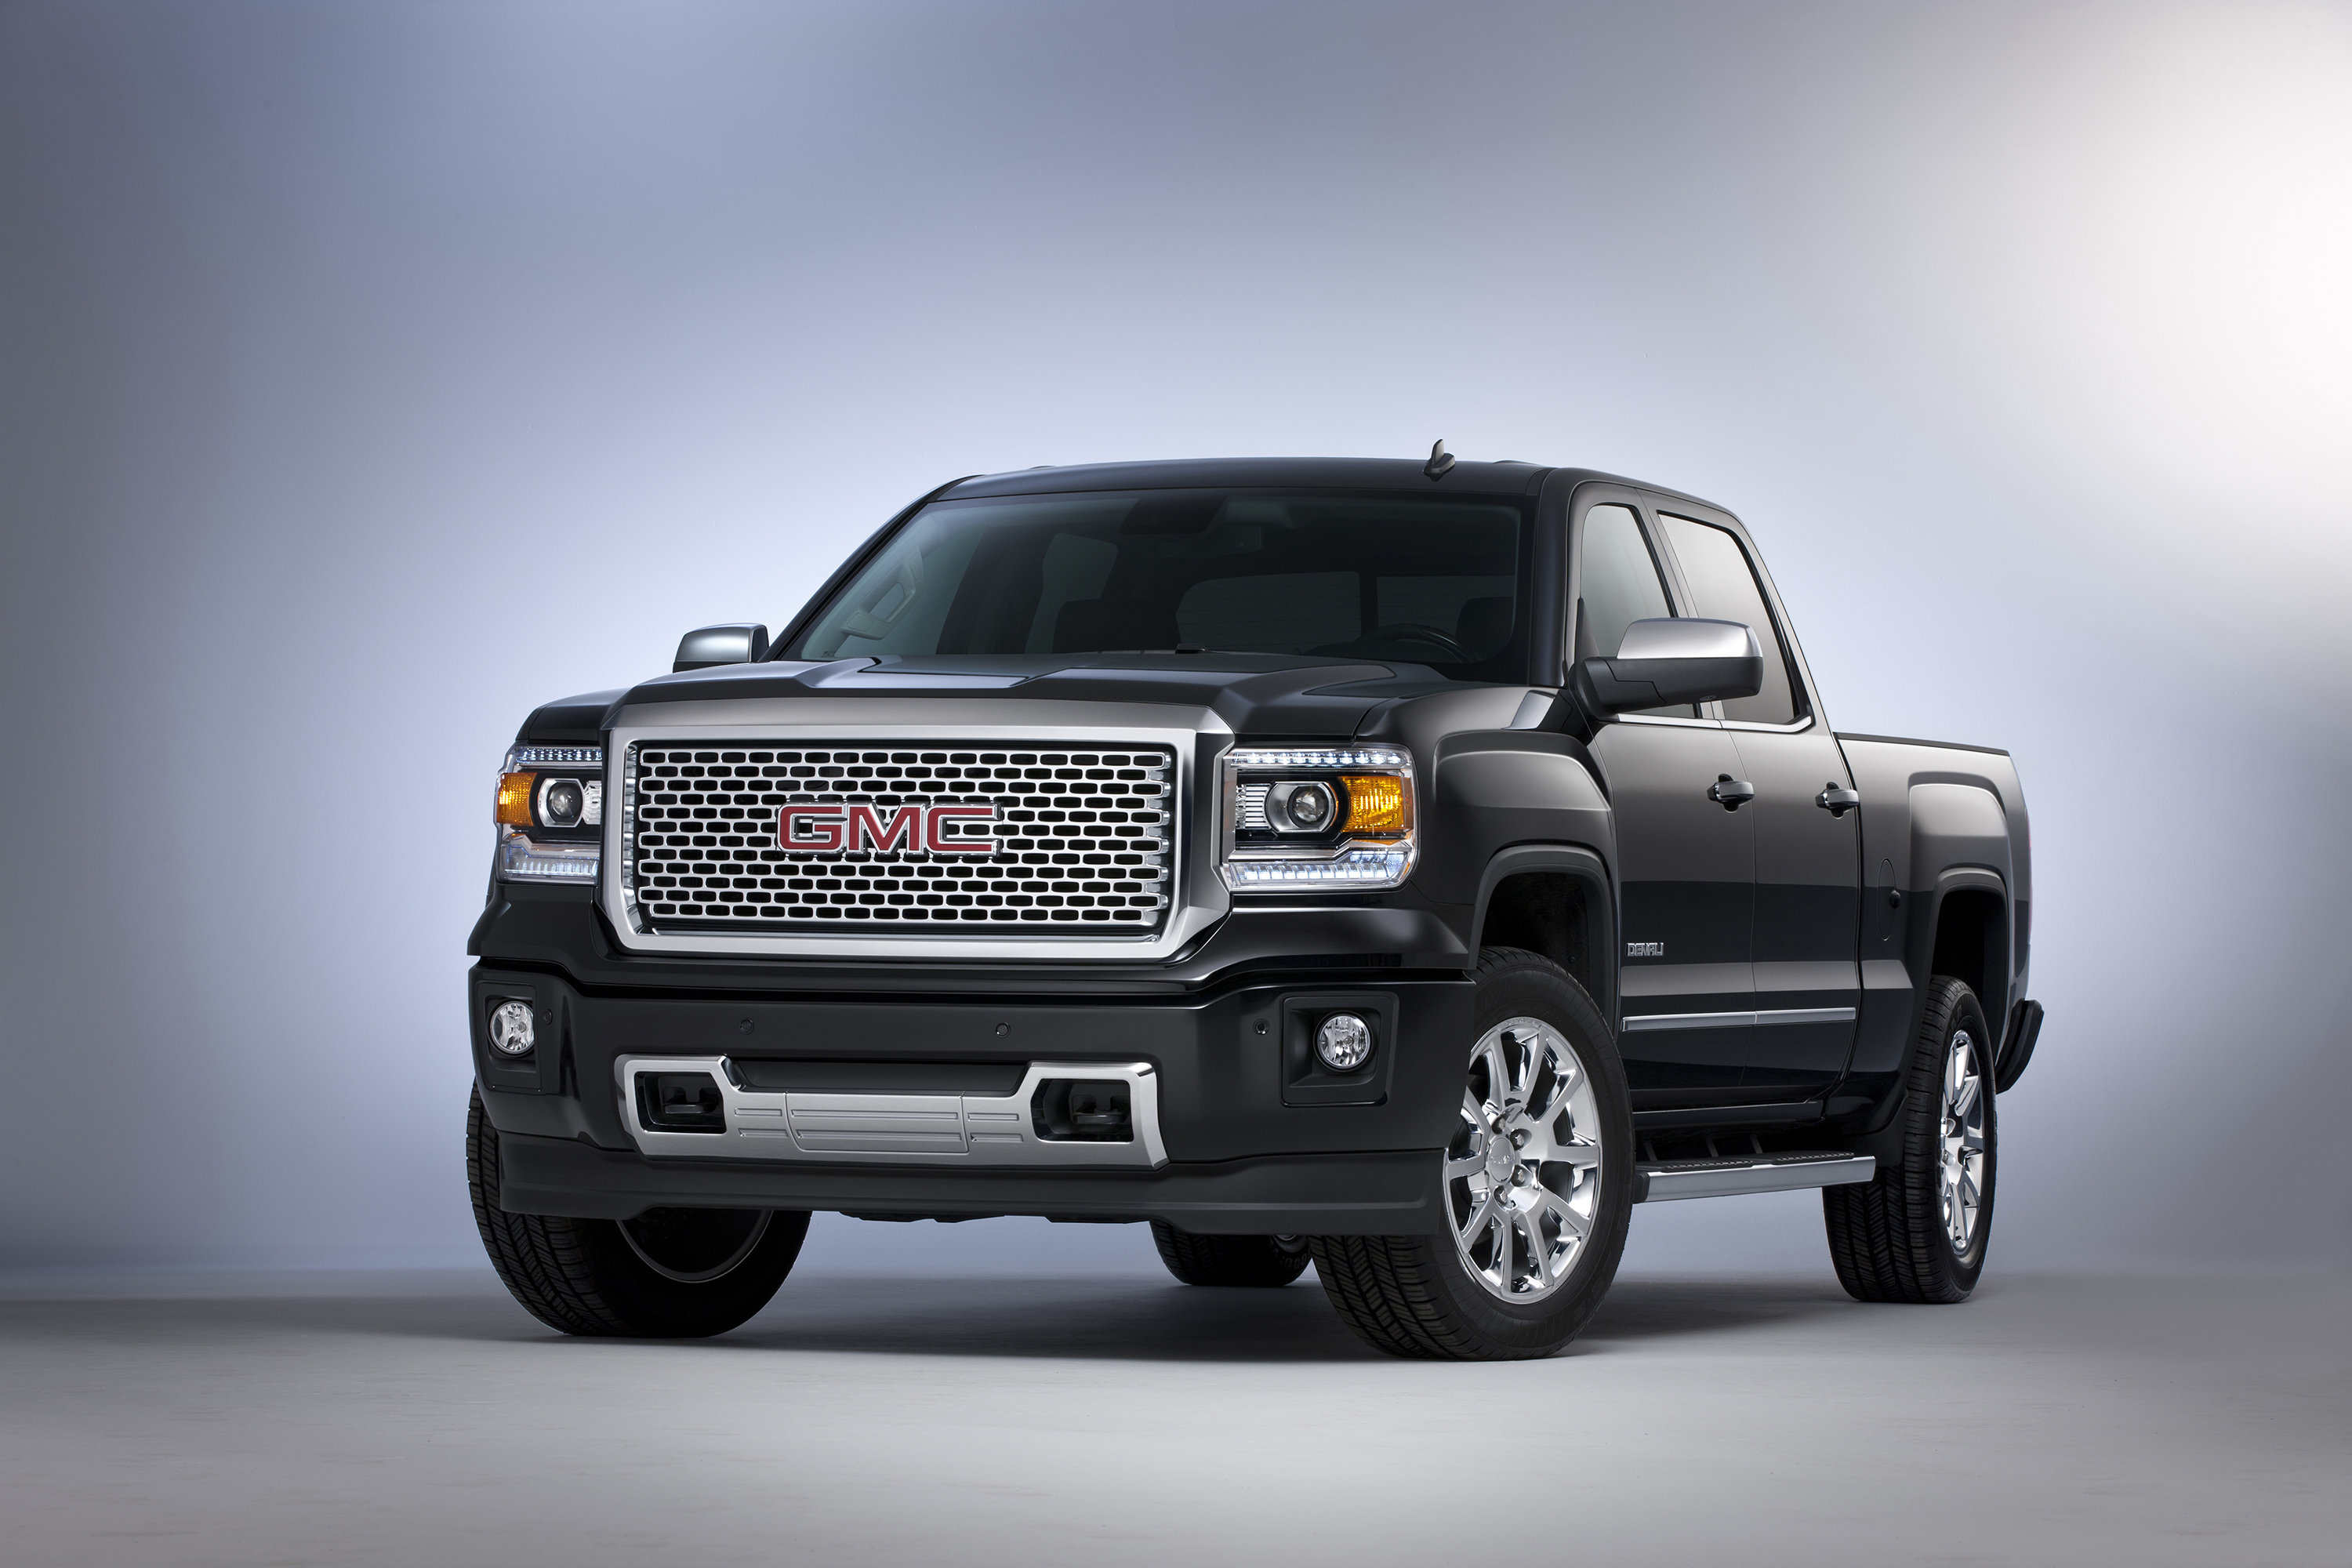 2015 Gmc Sierra Light Duty Enhanced With Greater Connectivity All New Eight Speed Automatic Transmission